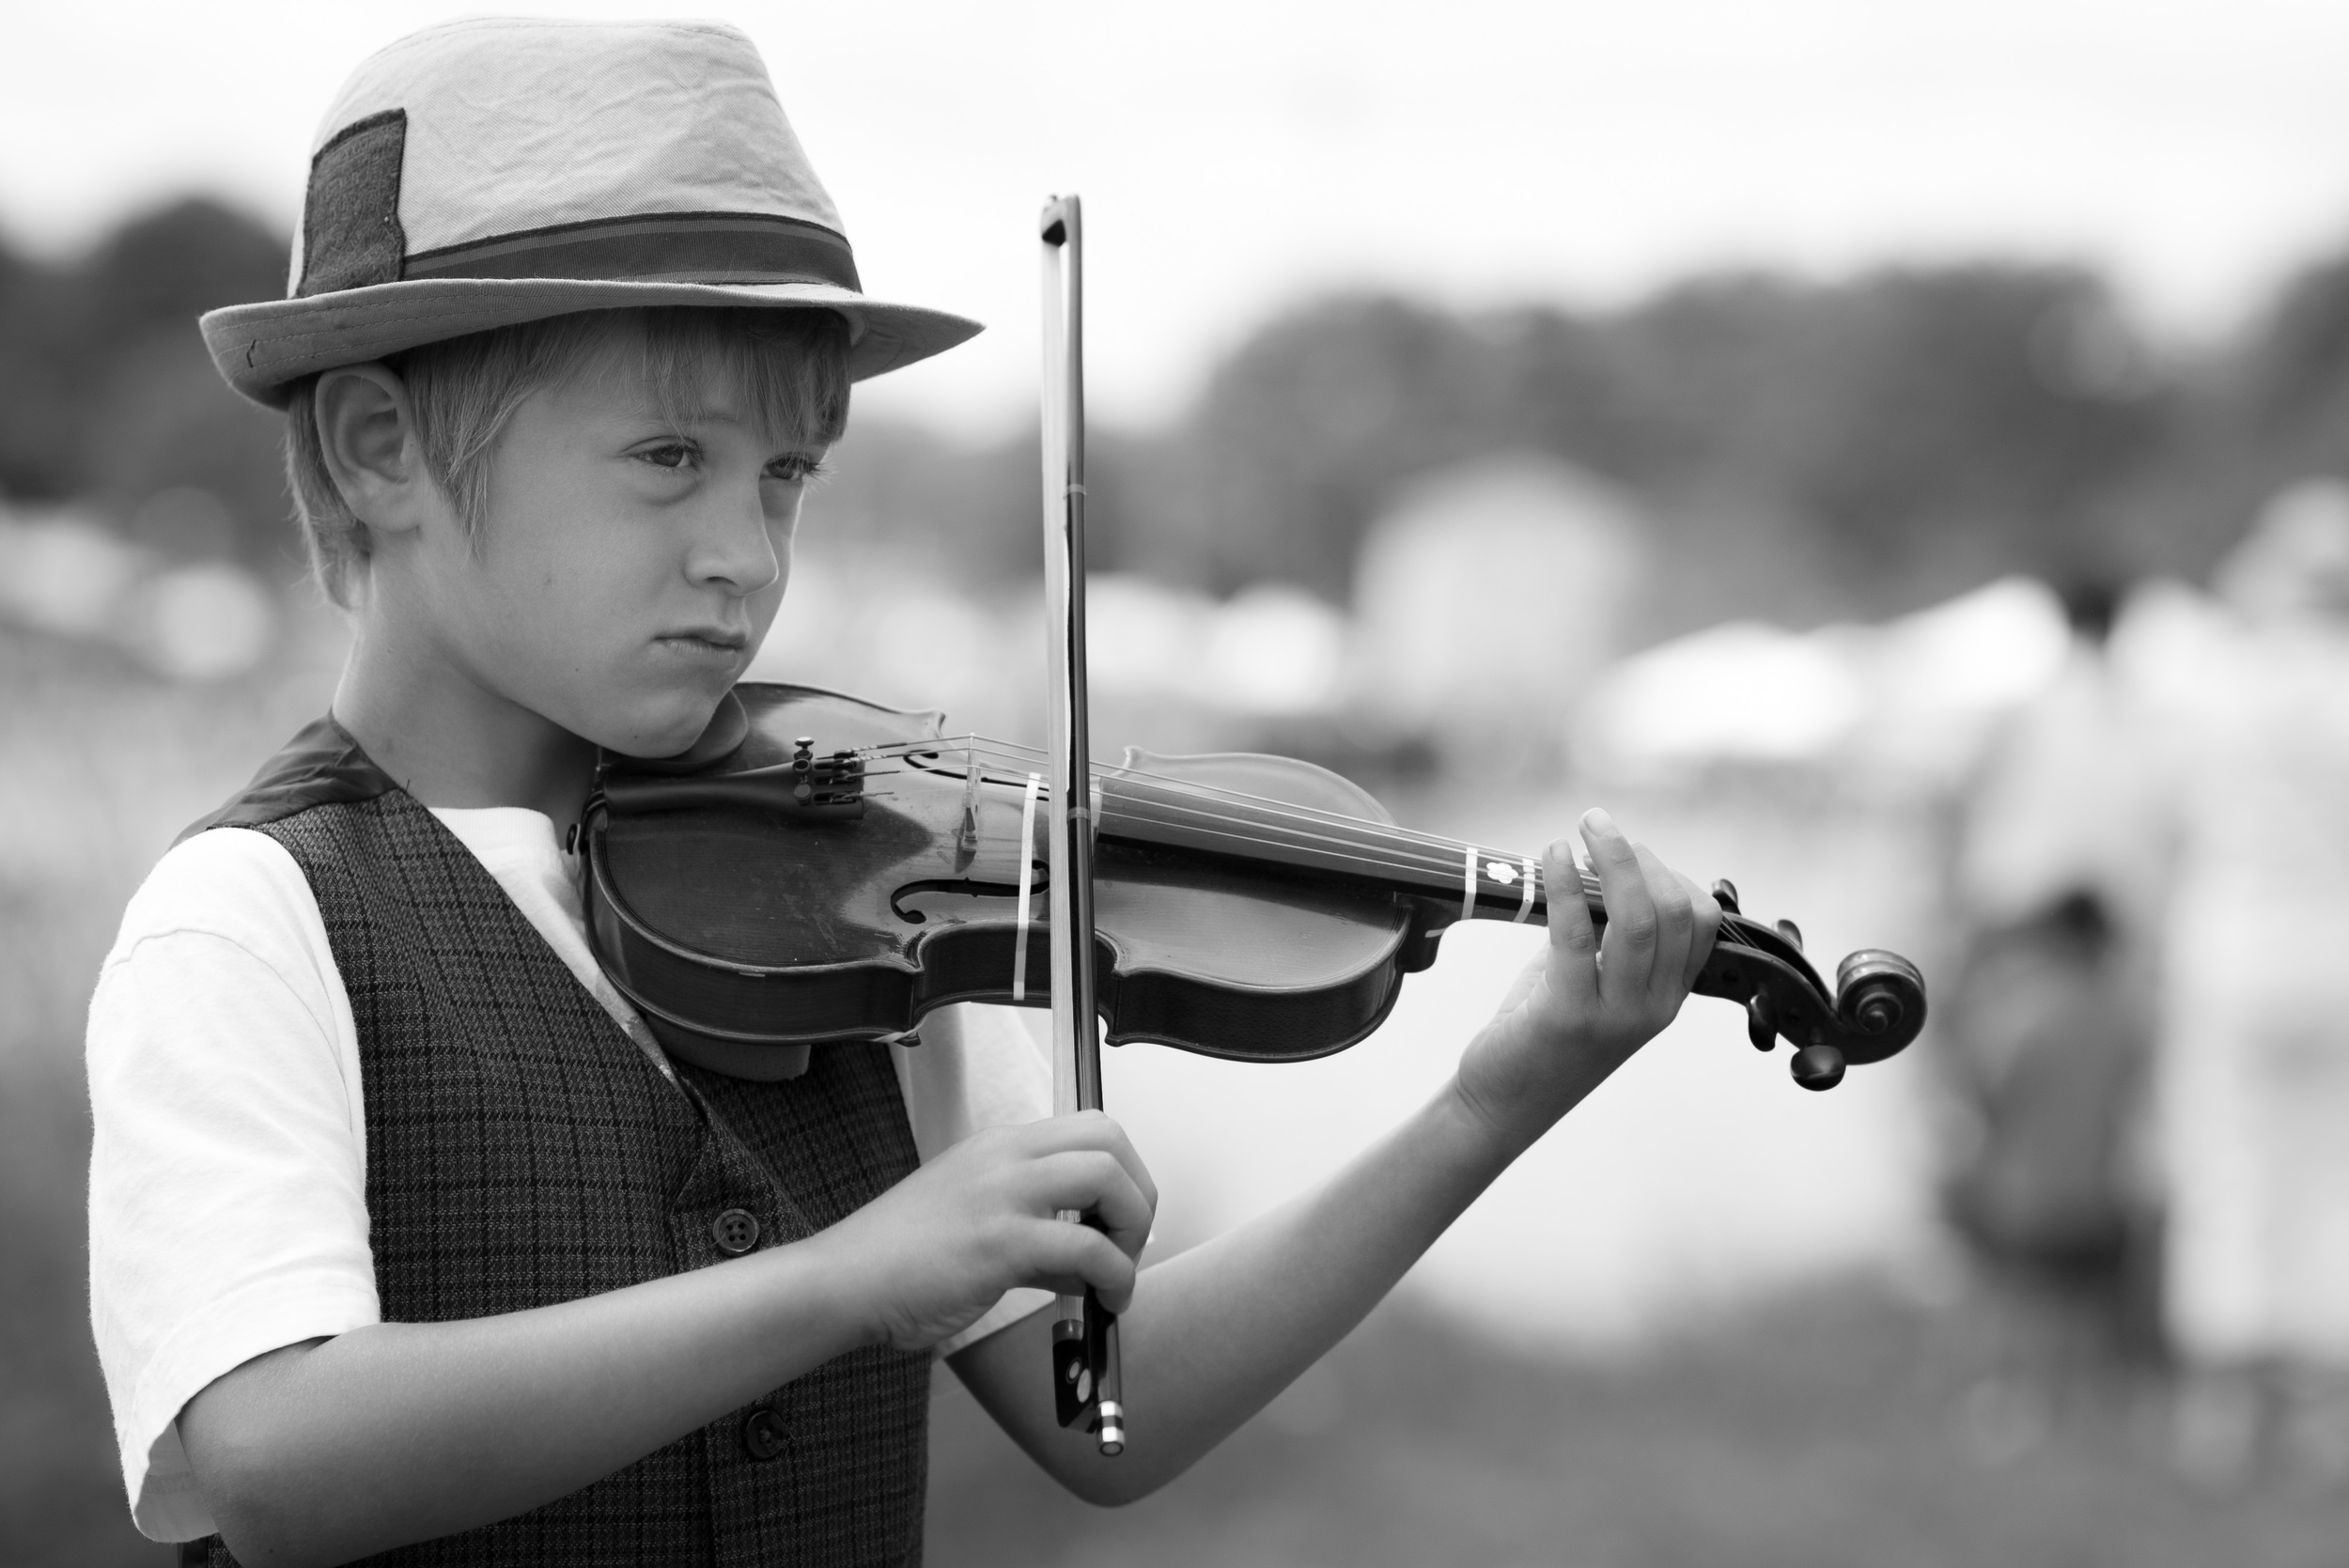 """Definitely the best thing I saw at the lake today was this young feller and his brother. They were taking turns stepping forward and playing tunes. In the fiddle case was a note, """"DS Fund."""" They were trying to raise some cash to buy a Nintendo DS, I hope they made a killing because they were really good."""